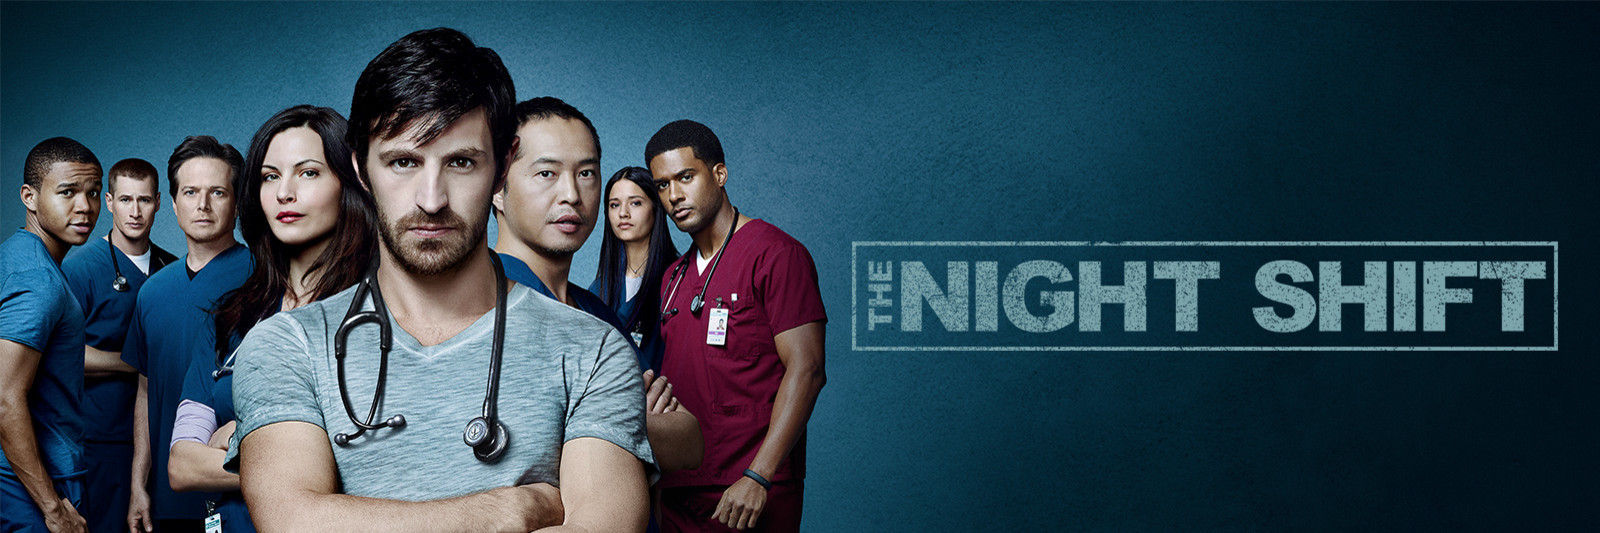 27 the night shift 1600 x 640 006 pre